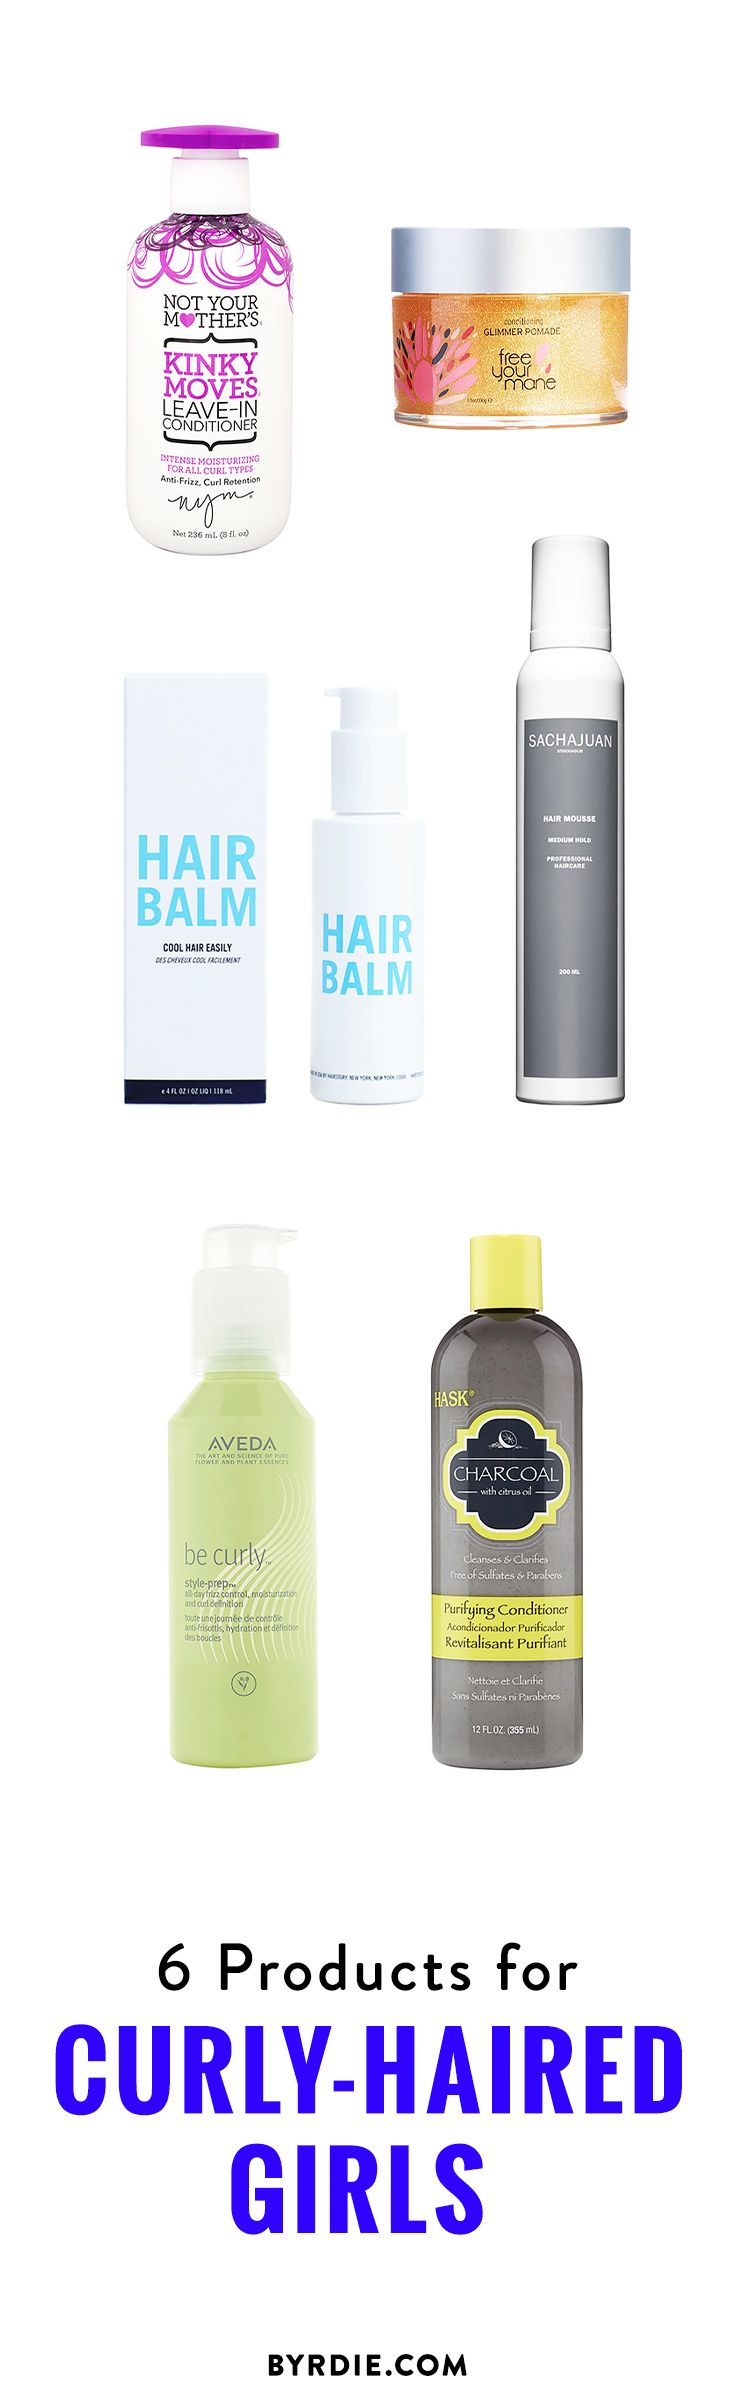 The best products for curly-haired girls